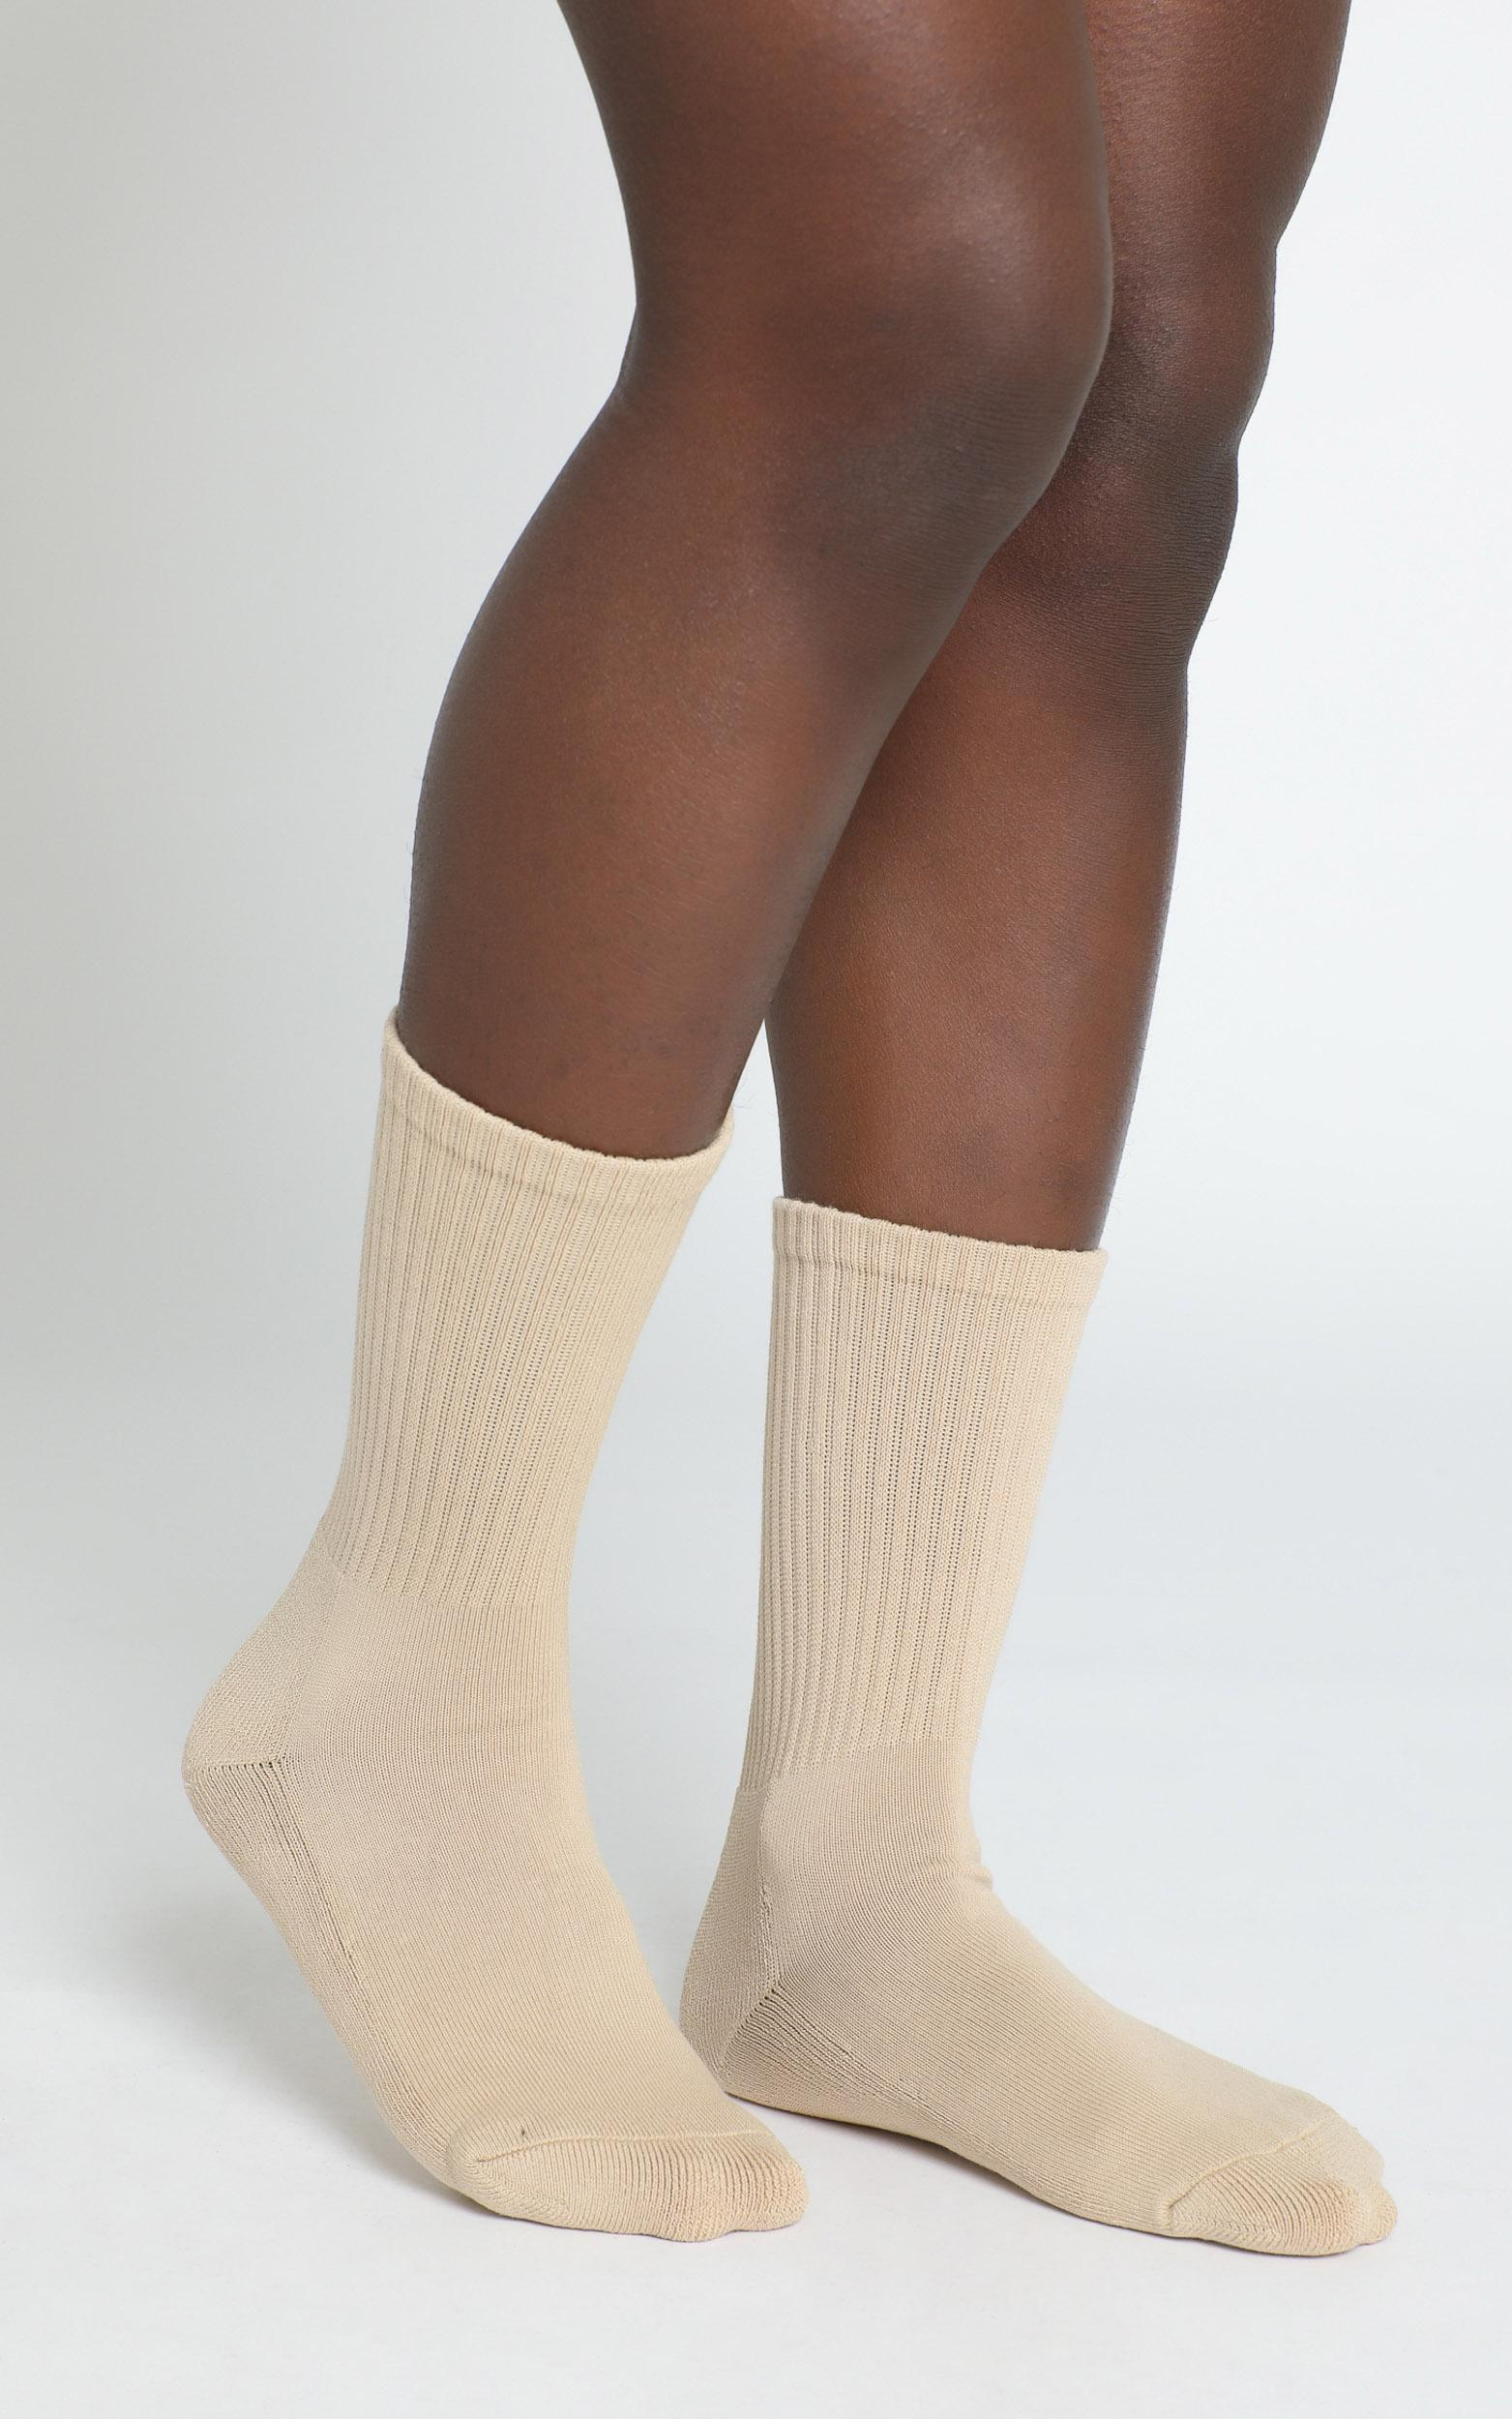 AS Colour - Relax Socks in Tan (2 Pairs) - Sizes 4-8, , hi-res image number null